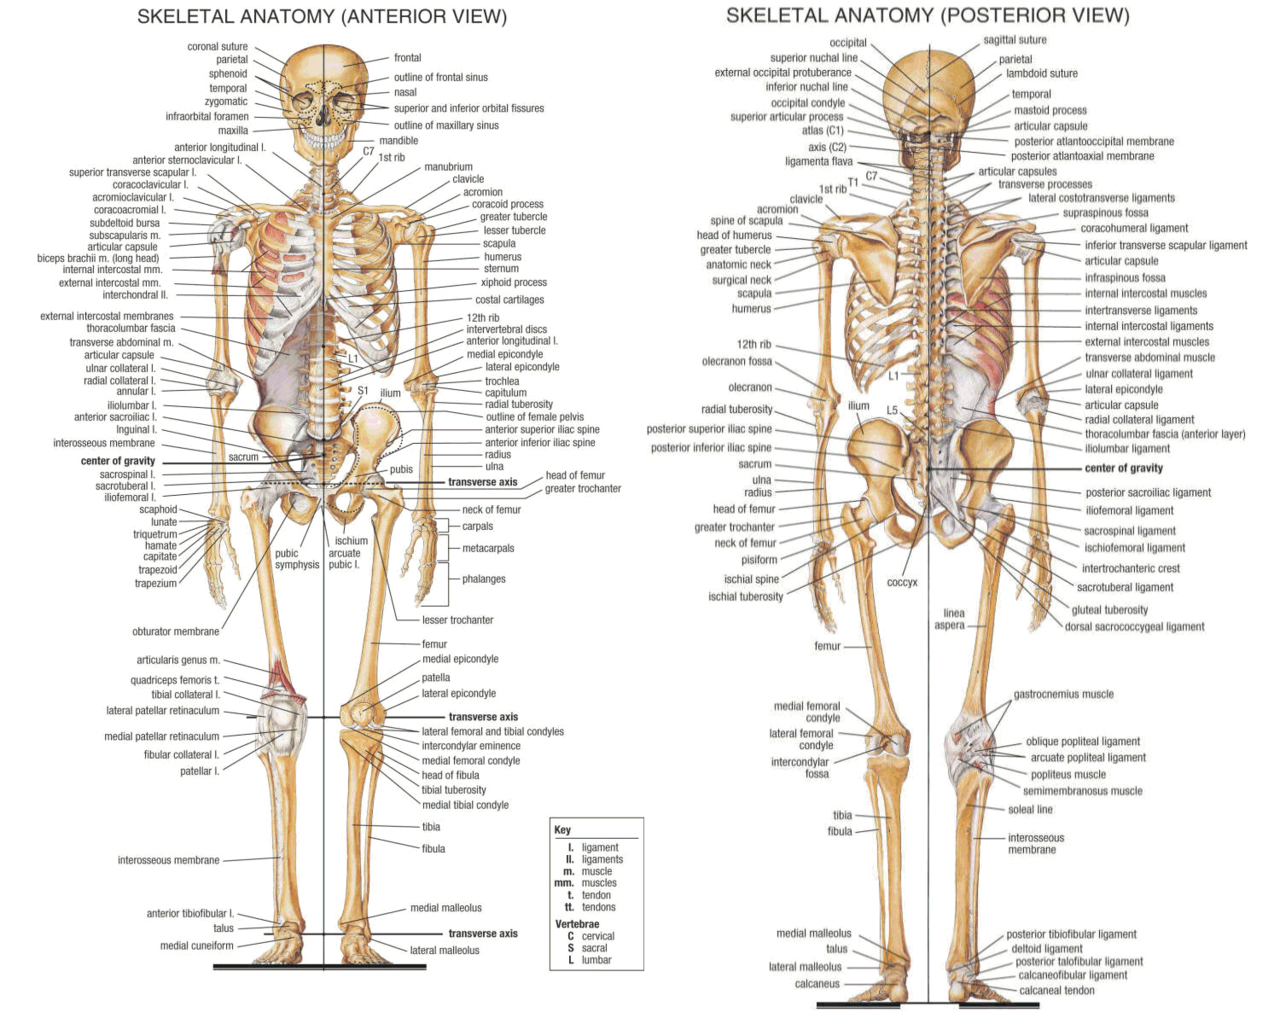 Skeletal System Chapter 5 anatomy physiology – Chapter 5 Skeletal System Worksheet Answers